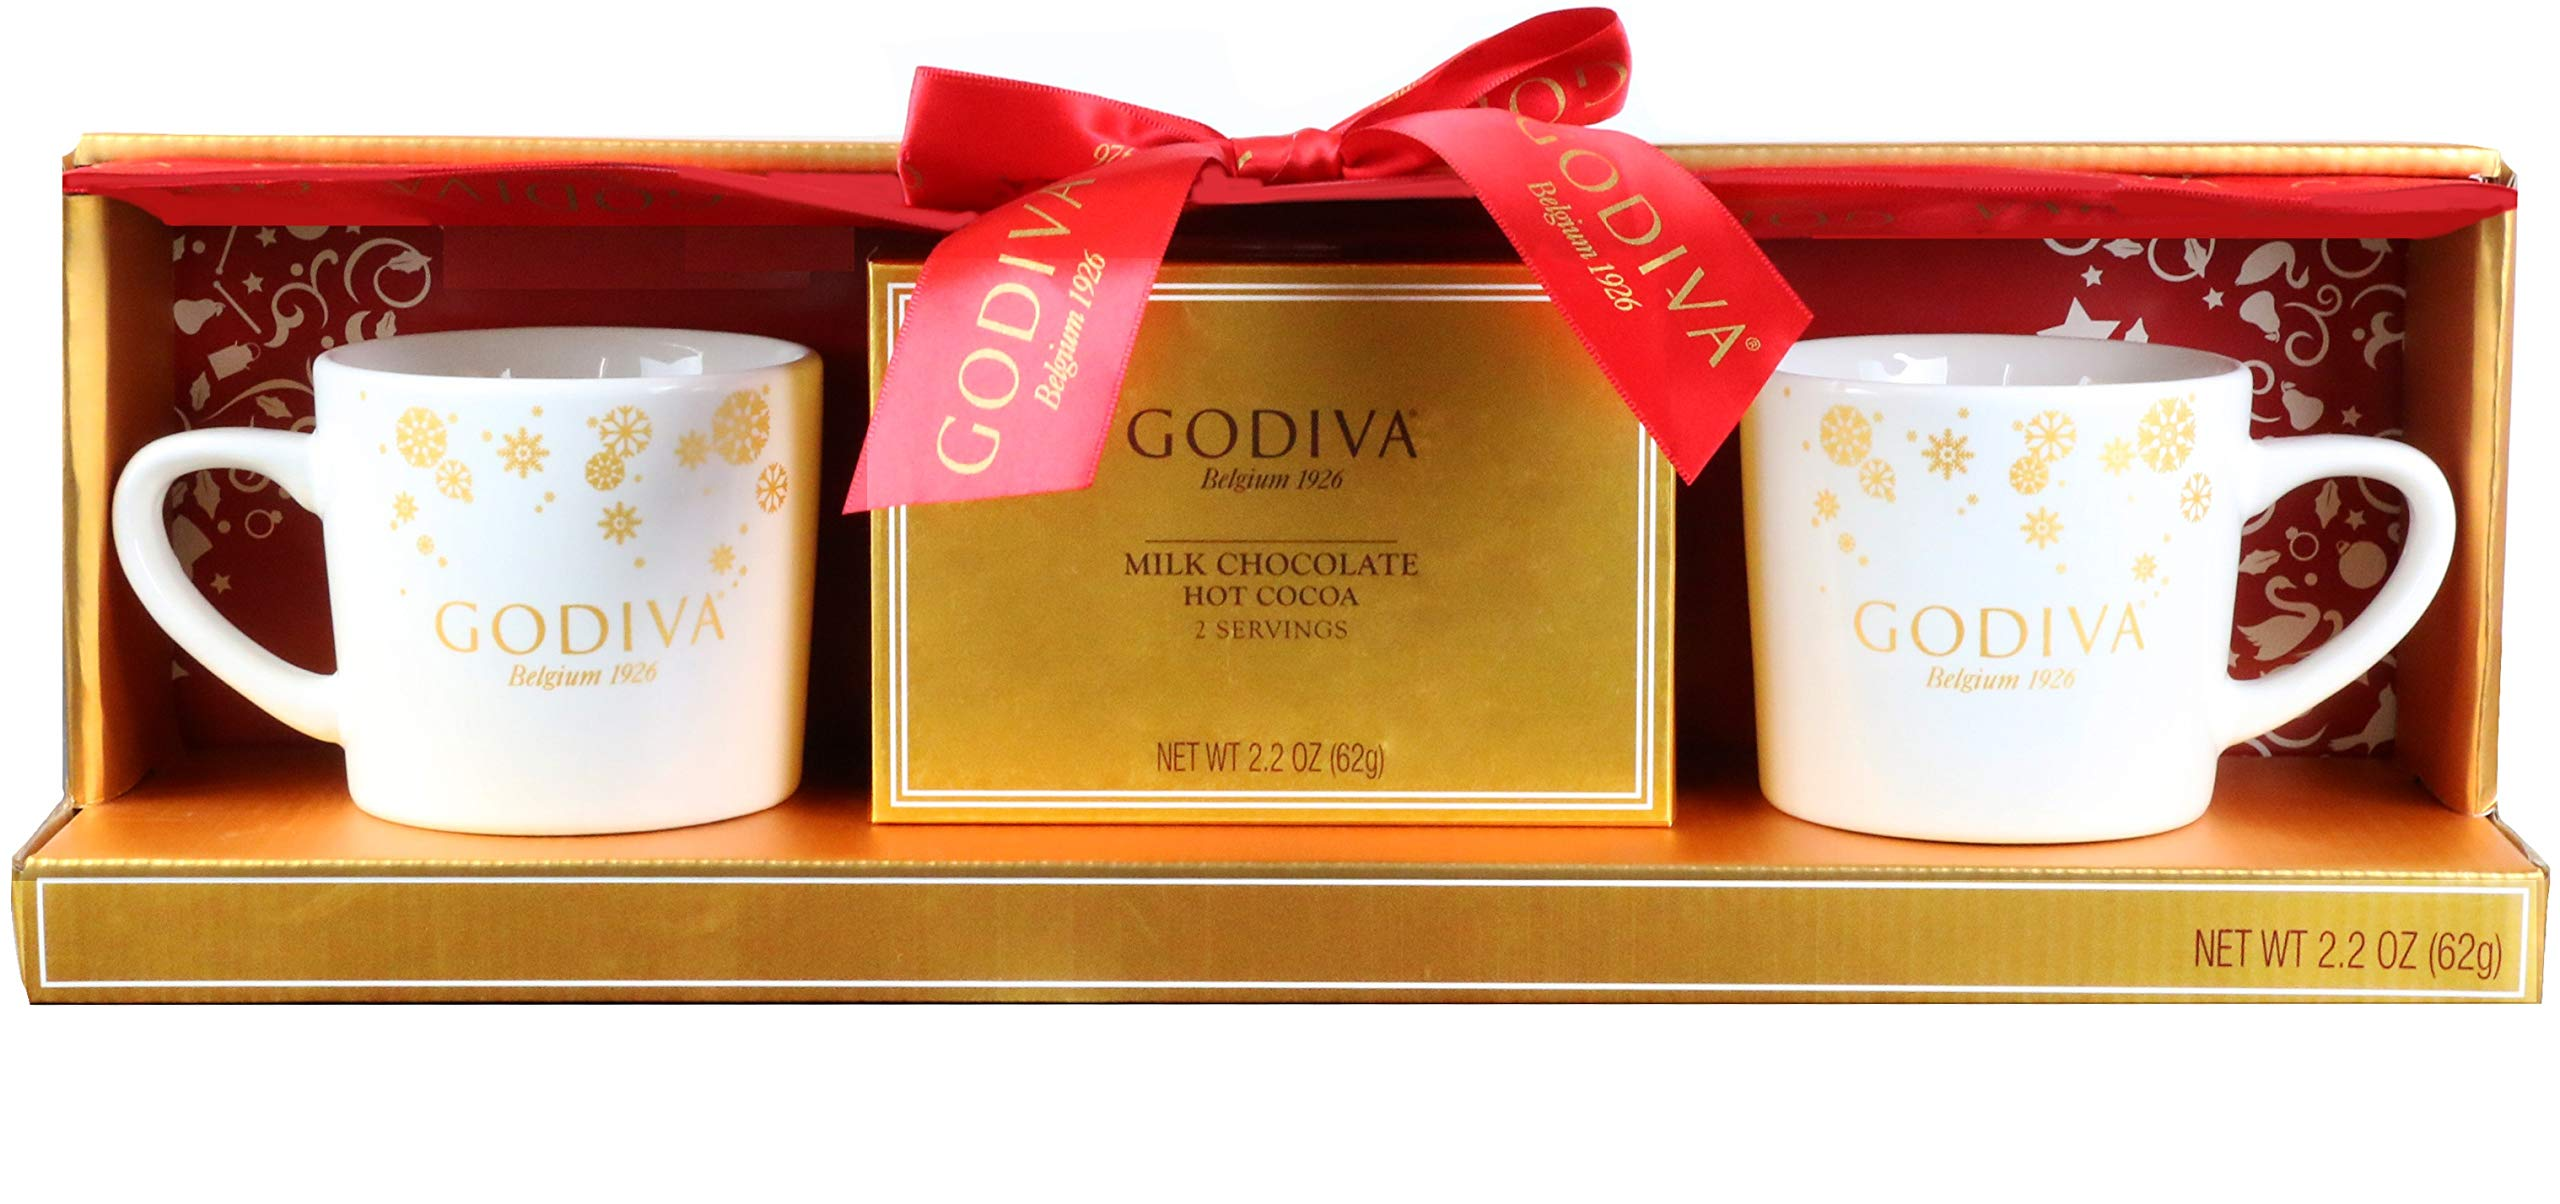 Godiva Cocoa for Two Gift Set | Contains 2 Reusable Mugs (12 oz.) and Godiva Milk Chocolate Cocoa Mix